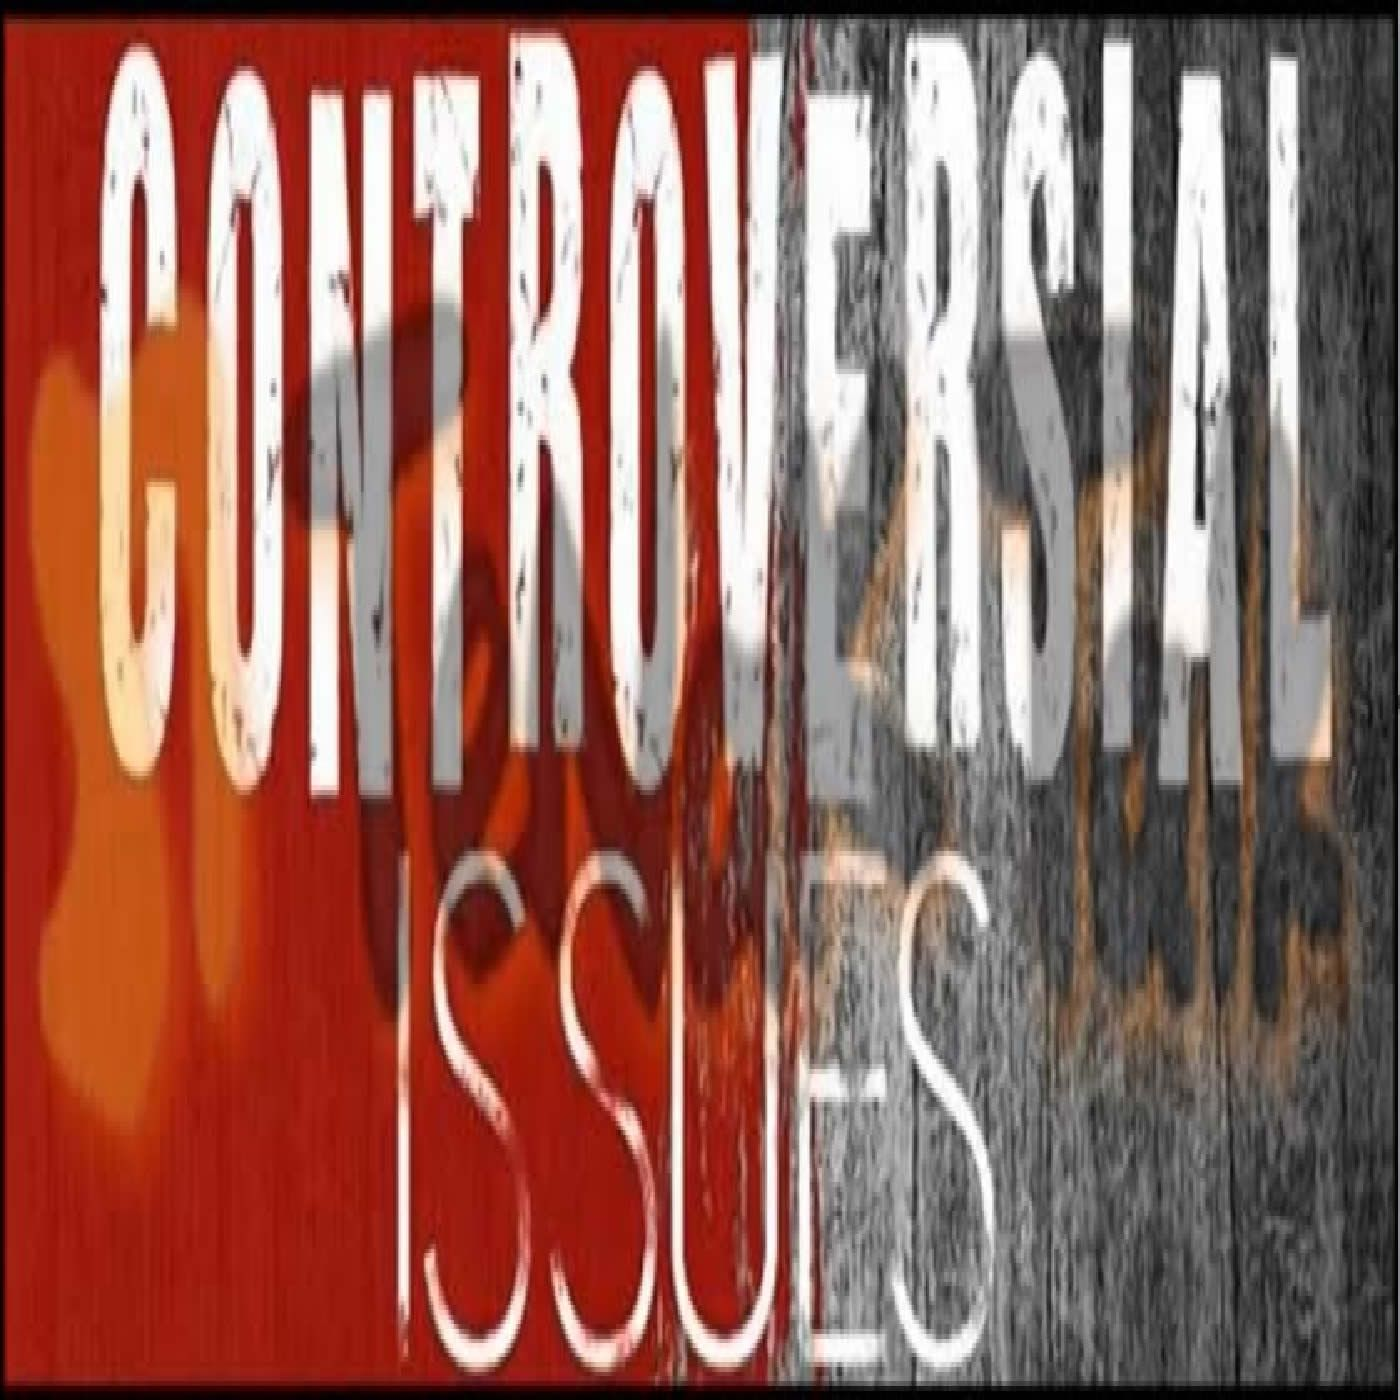 CONTROVERSIAL ISSUES 22 - Do We Really Want to Trust with Rabbi Chaim Coffman